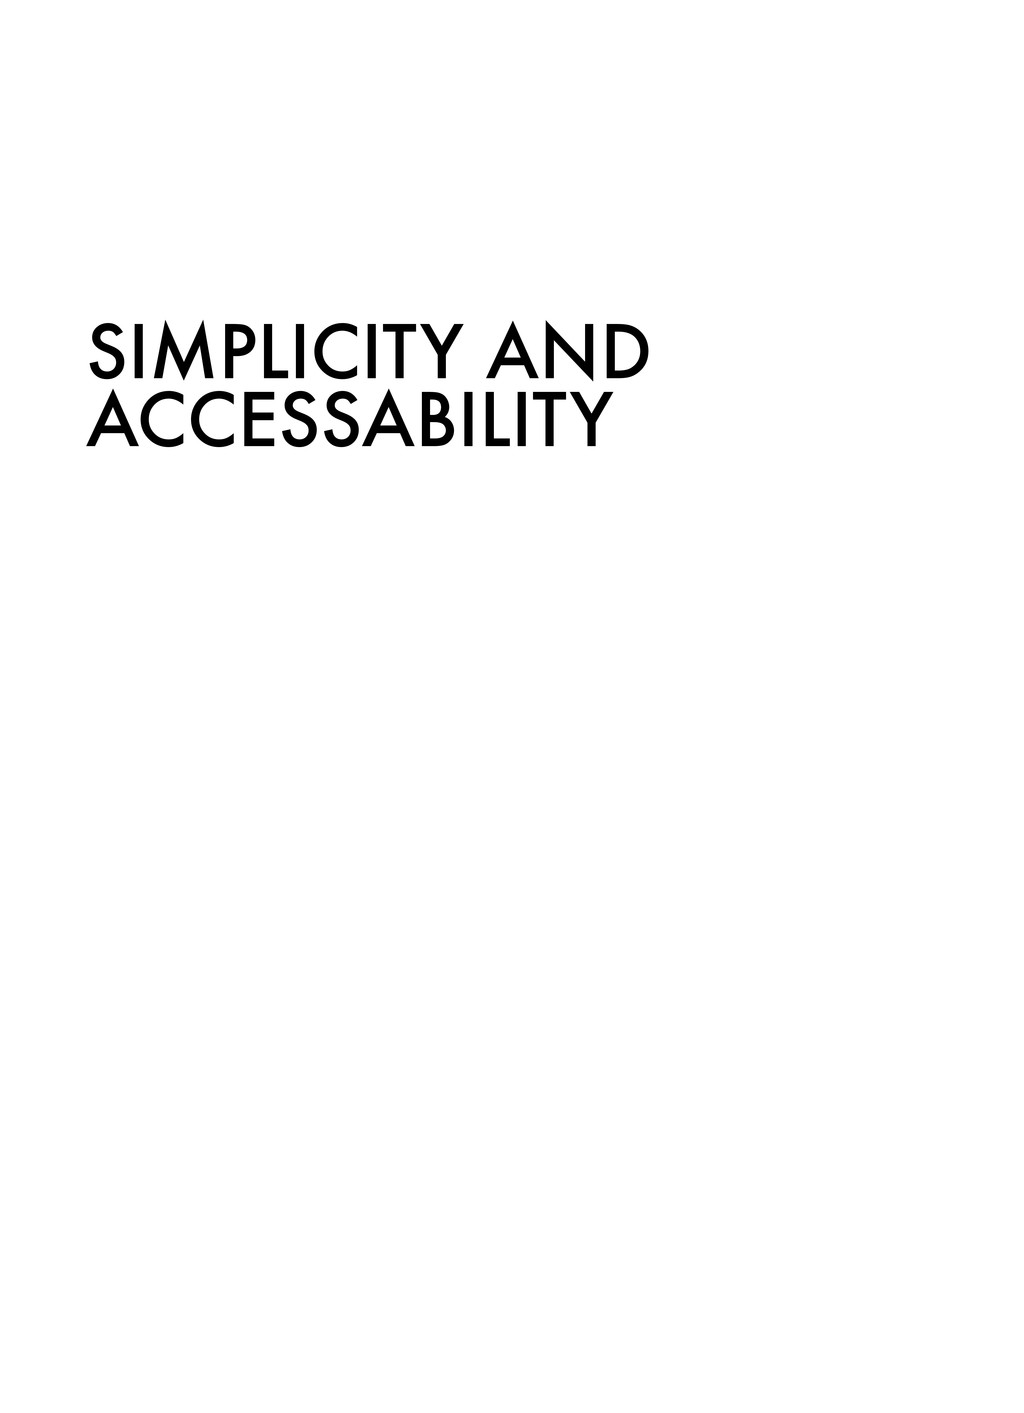 SIMPLICITY AND ACCESSABILITY